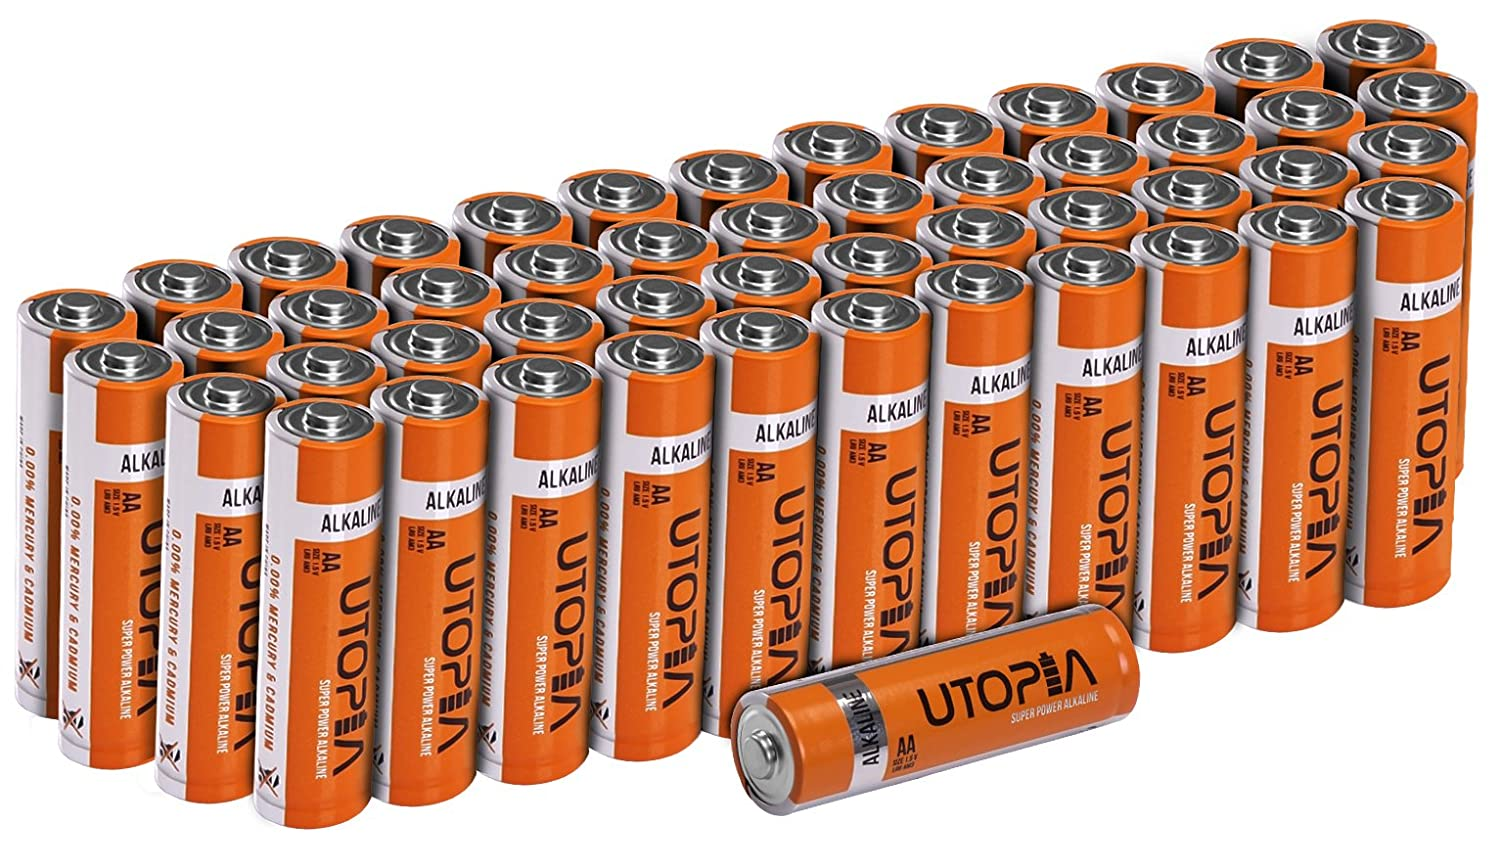 Utopia Home AA Alkali Battery (Pack of 50) - Long Lasting Performance - Perfect for Daily Use